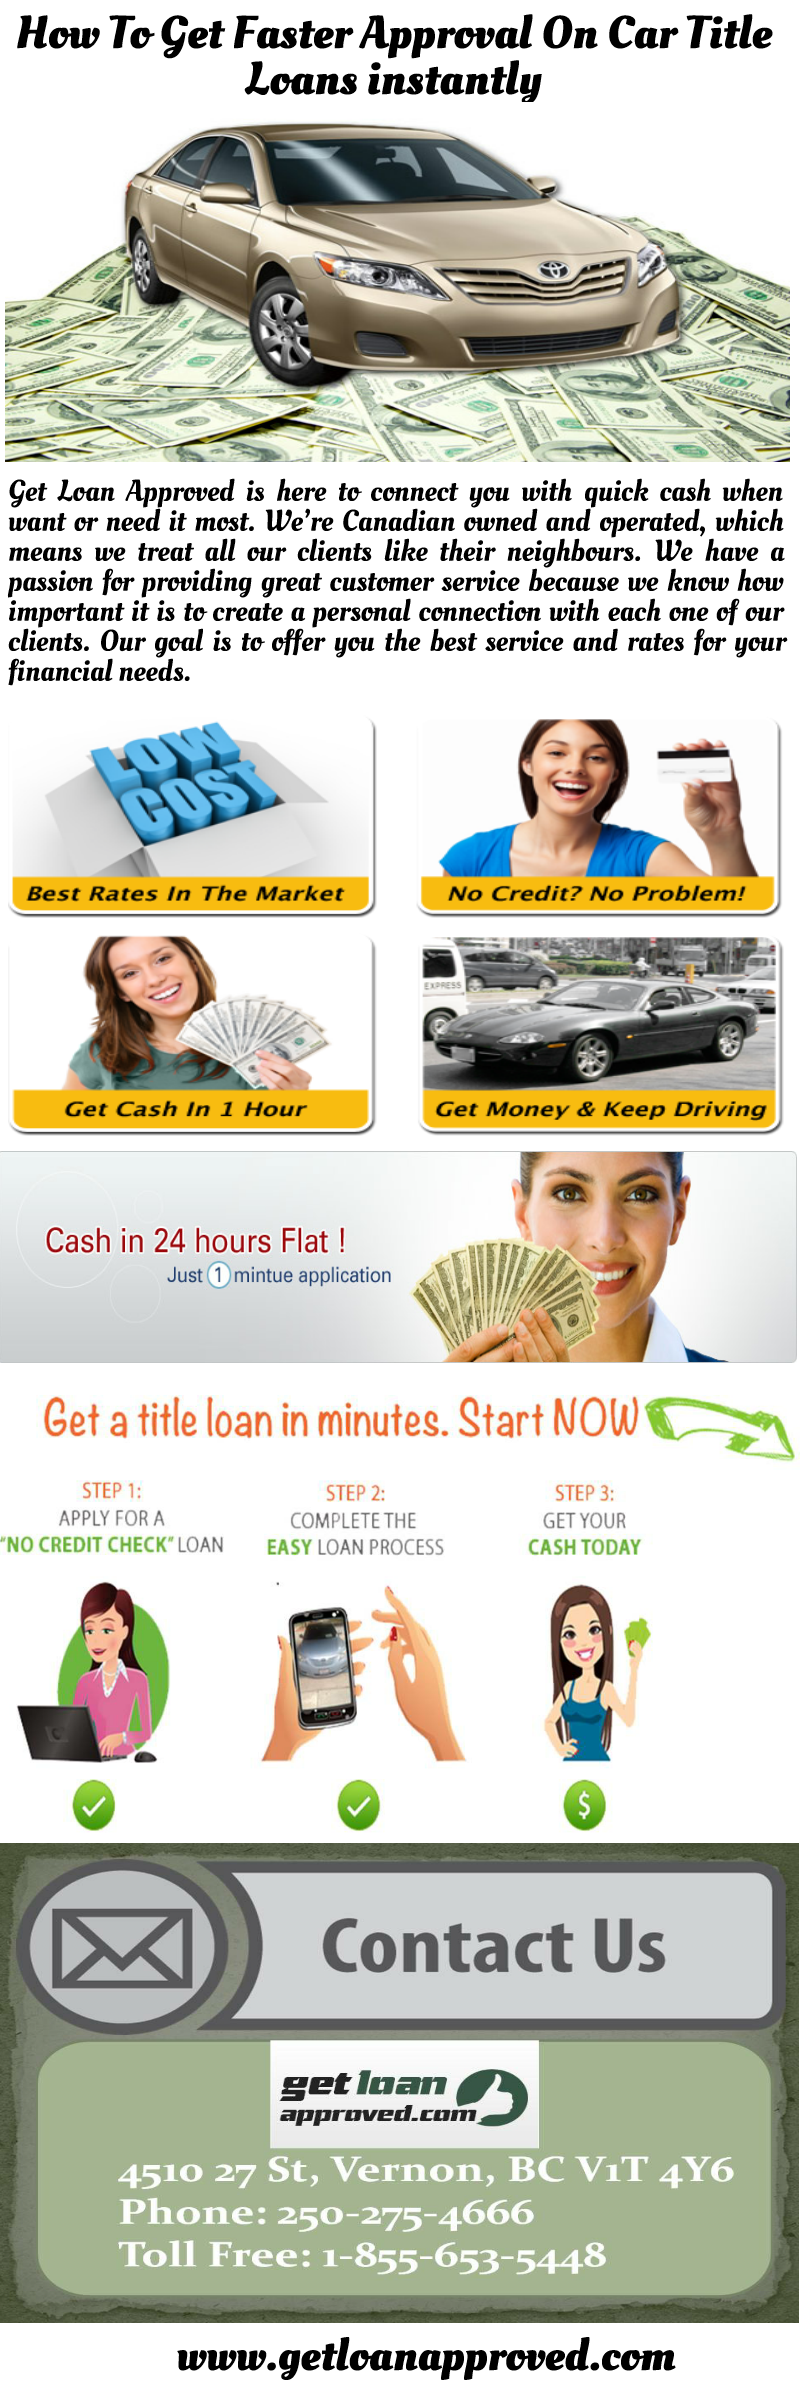 Cash advance for american express at which bank picture 2